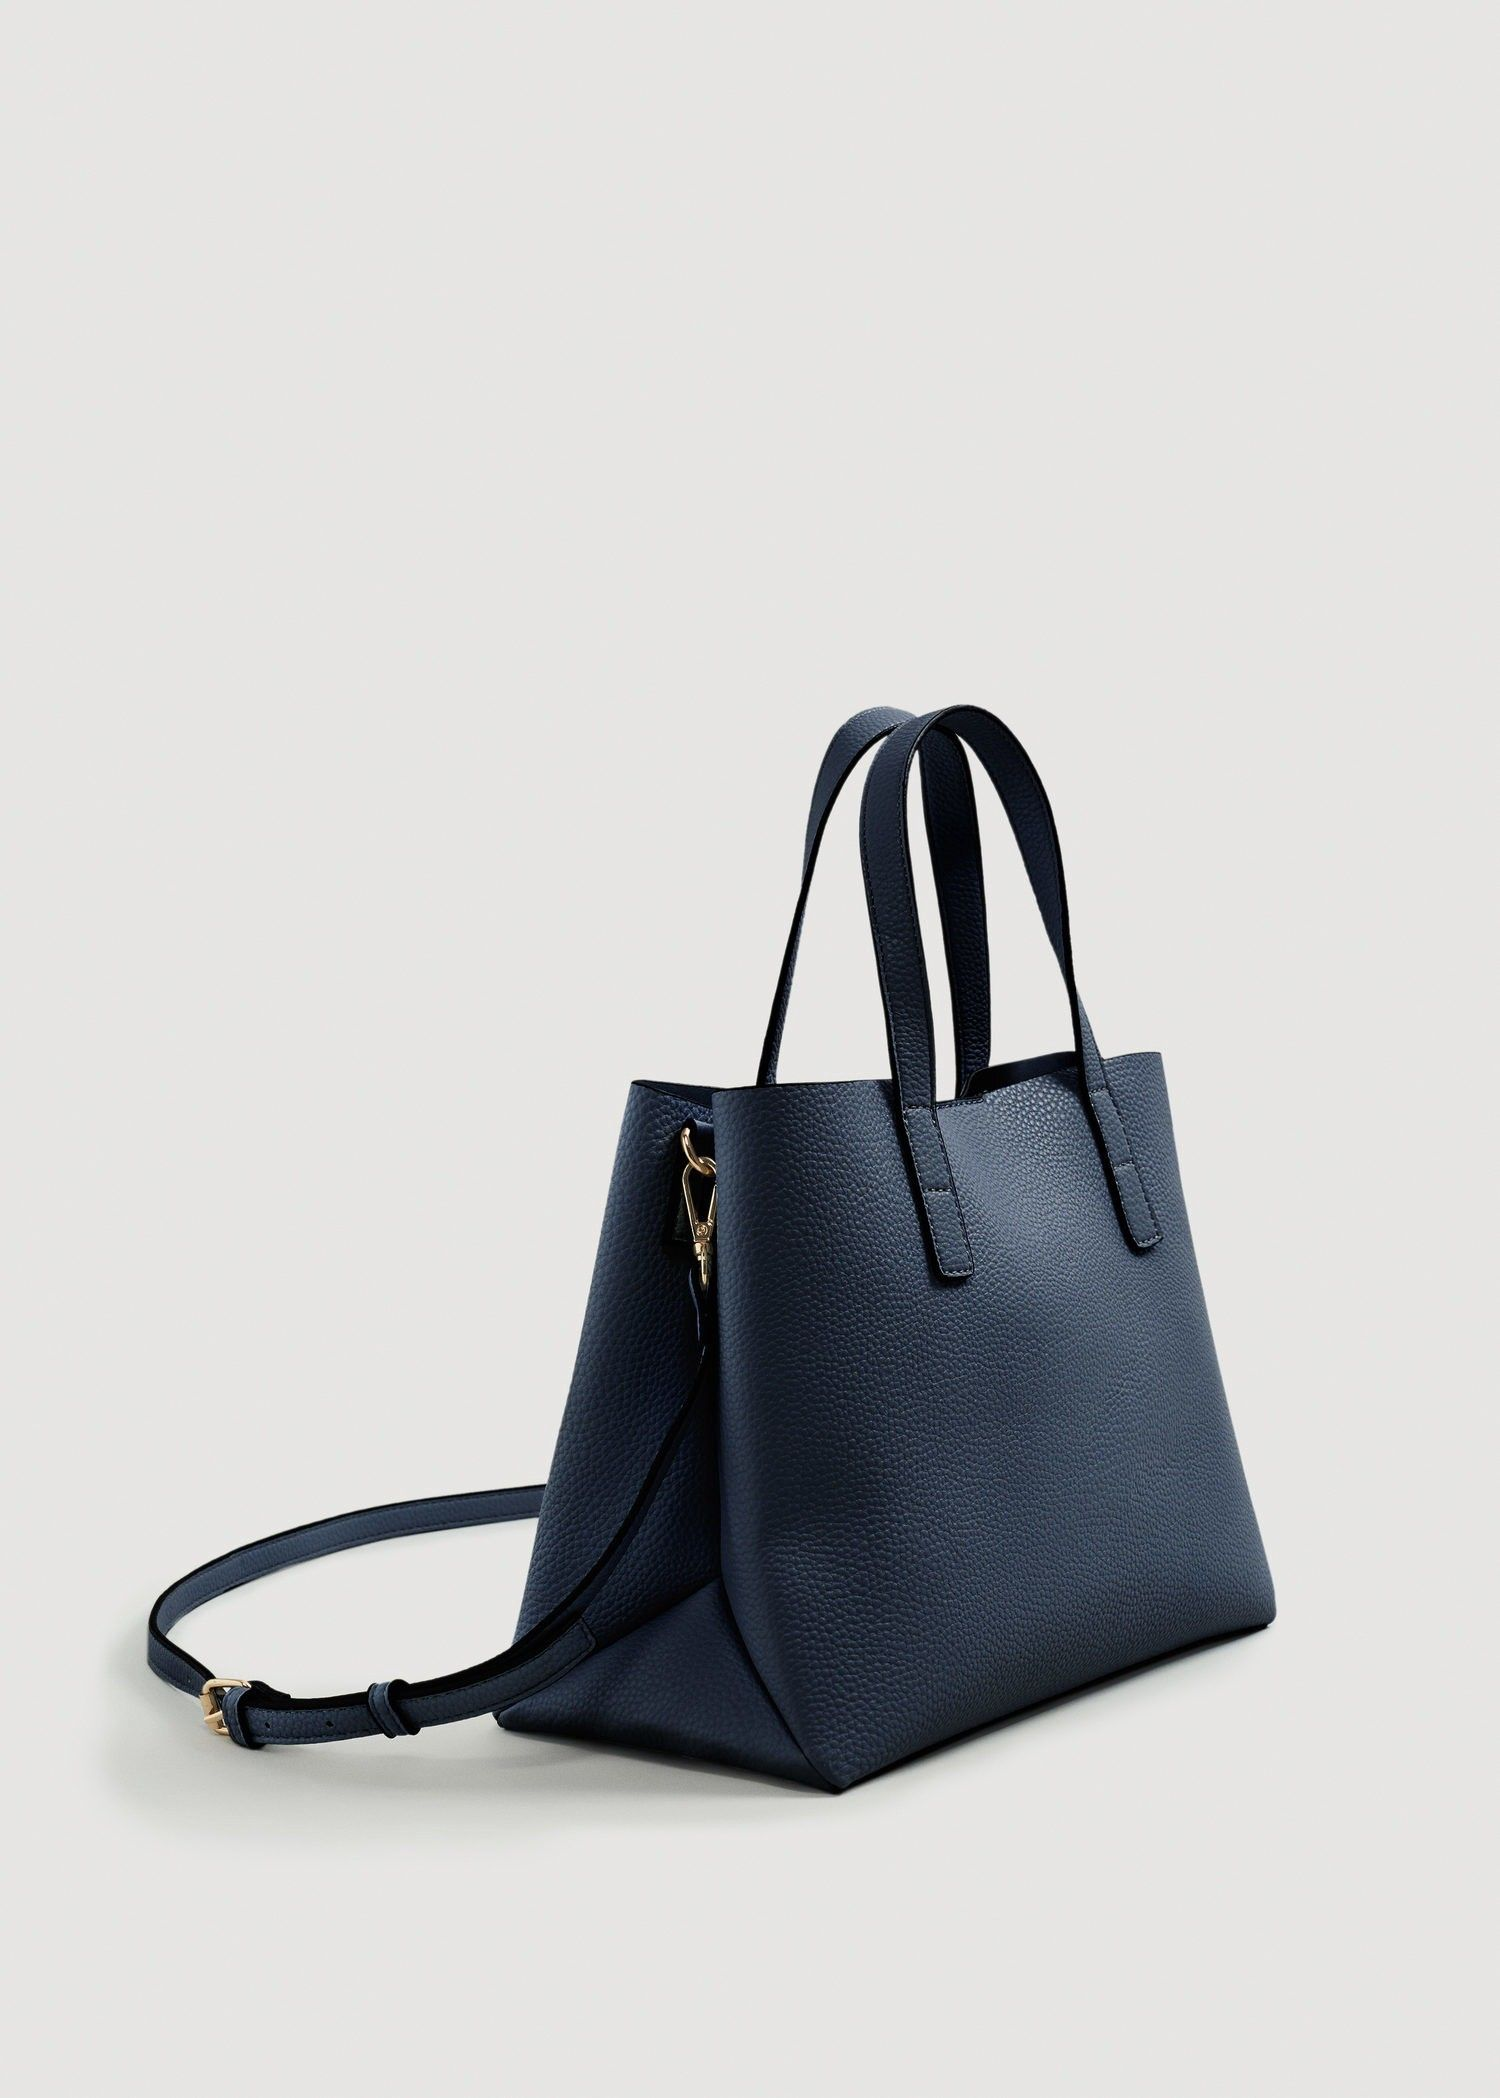 90c45c890264a Mango Pebbled Tote Bag - Navy One Size in 2019